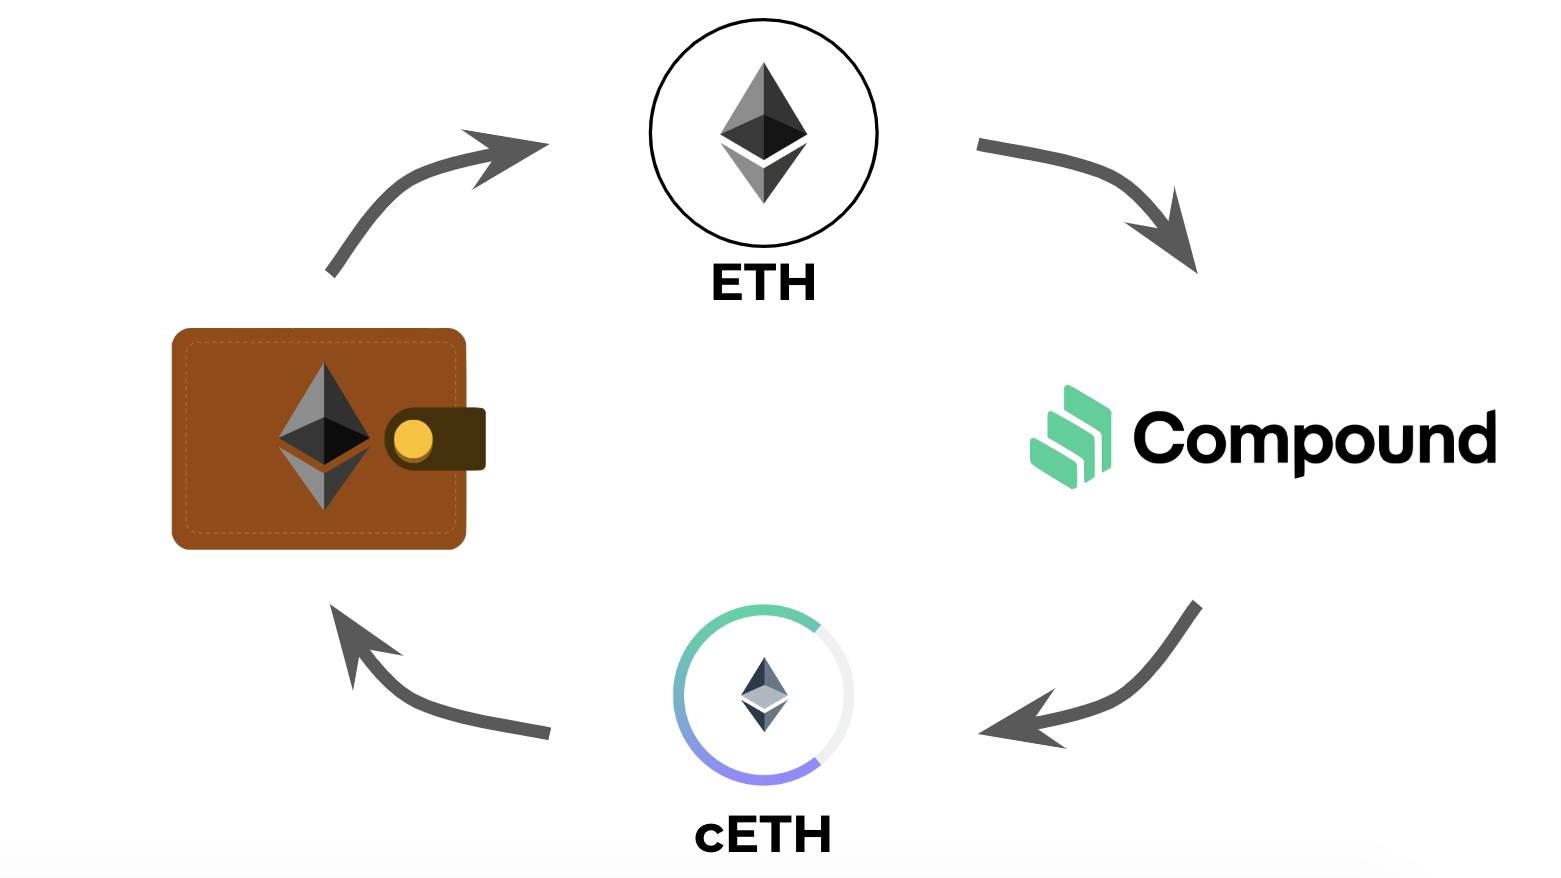 Supply DAI tokens to Compound